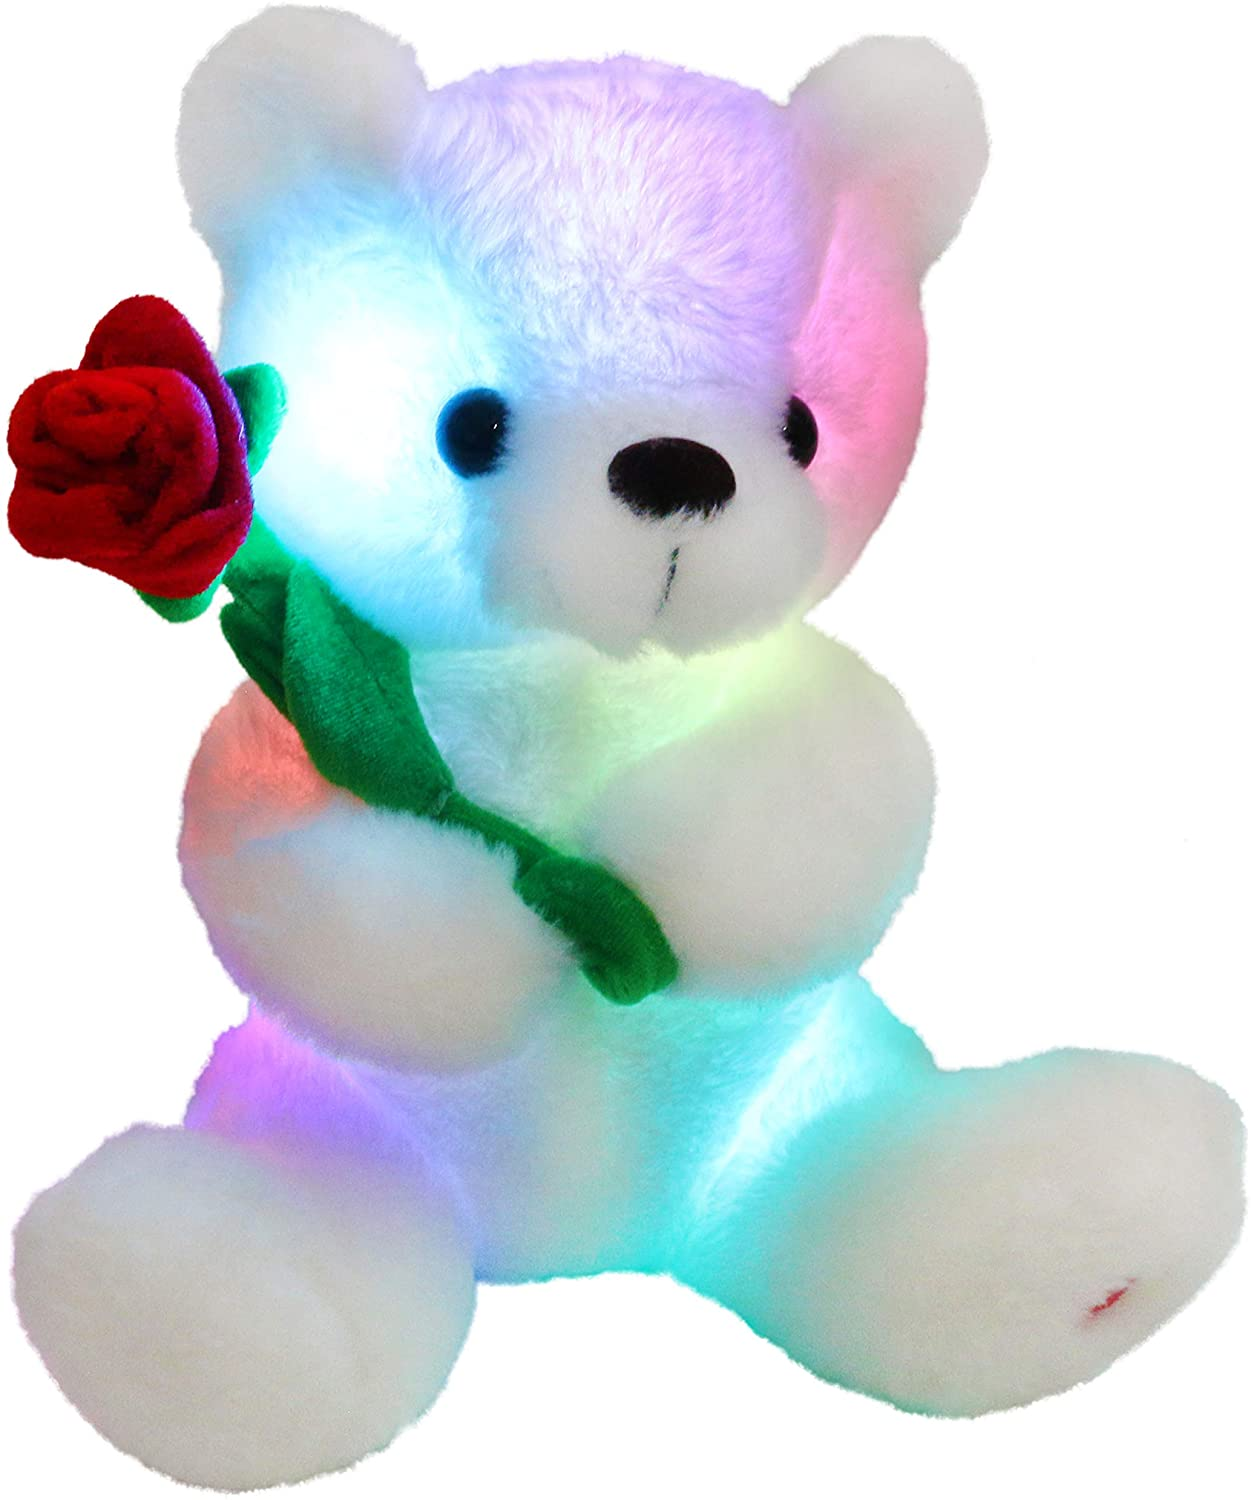 Houwsbaby Glow Teddy Bear with Rose Stuffed Animal Soft Light Up Plush Toy LED Night Lights for Kids Toddler Girlfriend Mother's Day, White, 10.5''